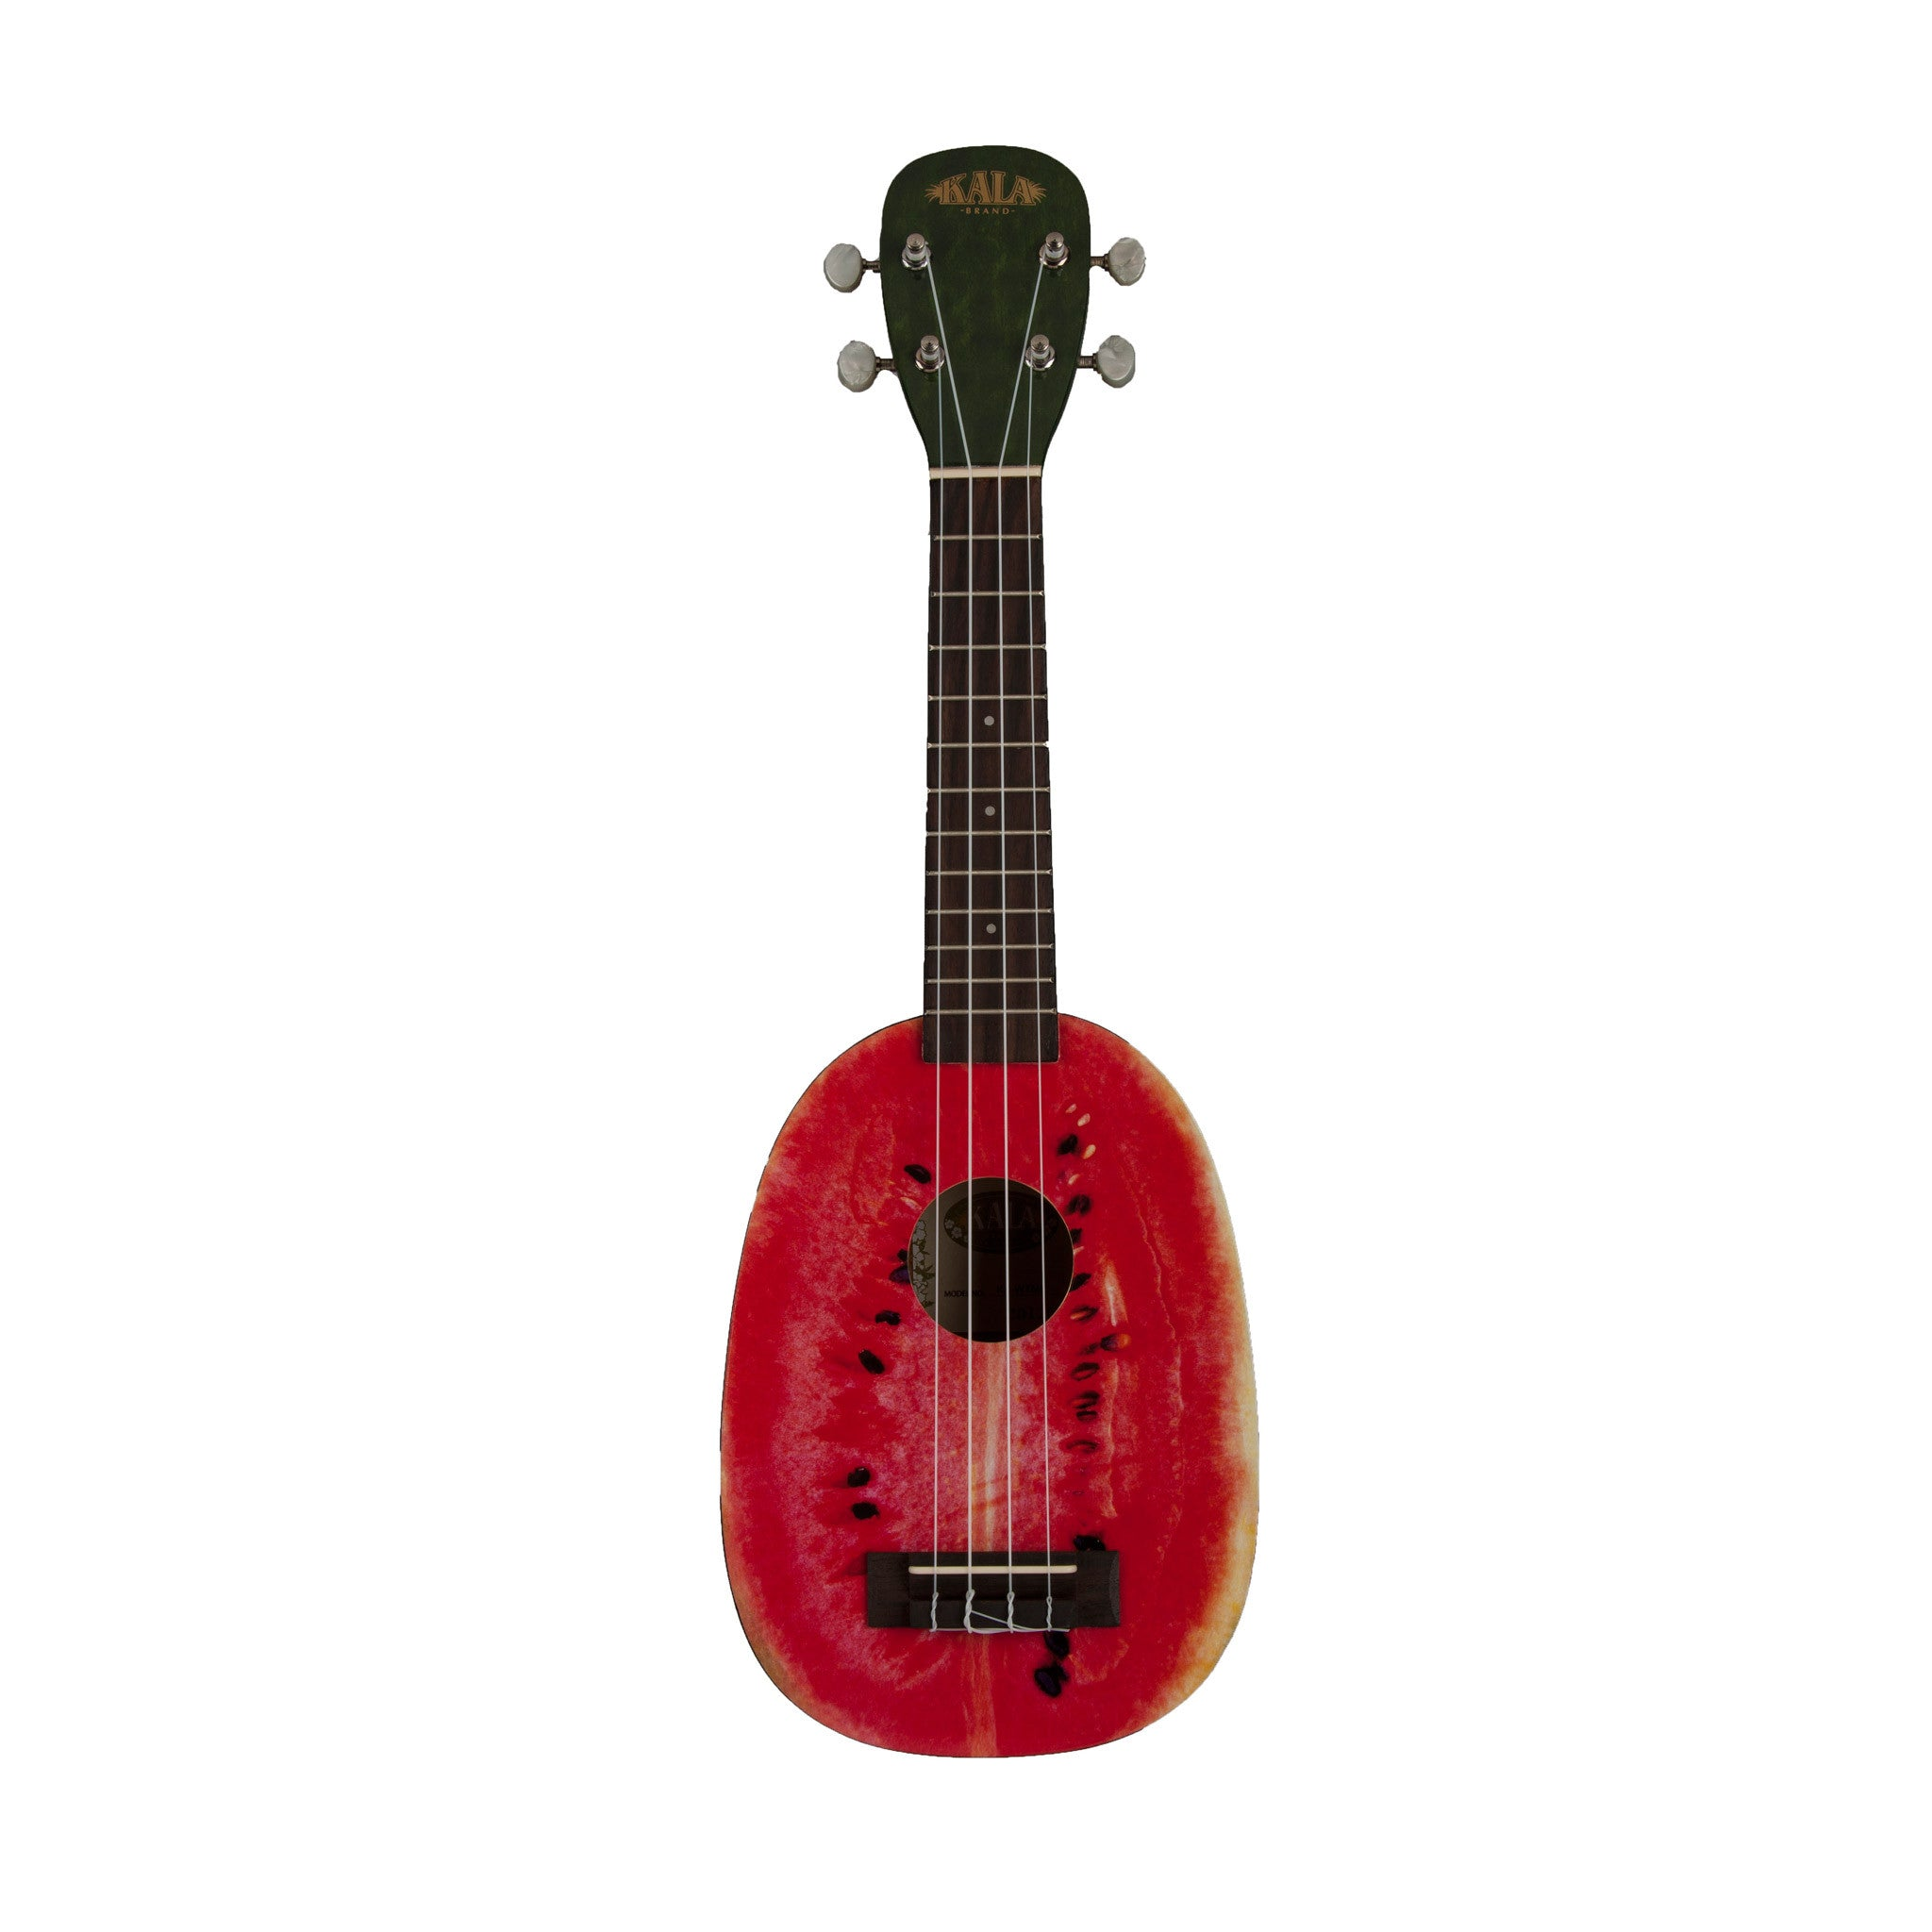 kala brand watermelon soprano ukulele groundswell supply. Black Bedroom Furniture Sets. Home Design Ideas